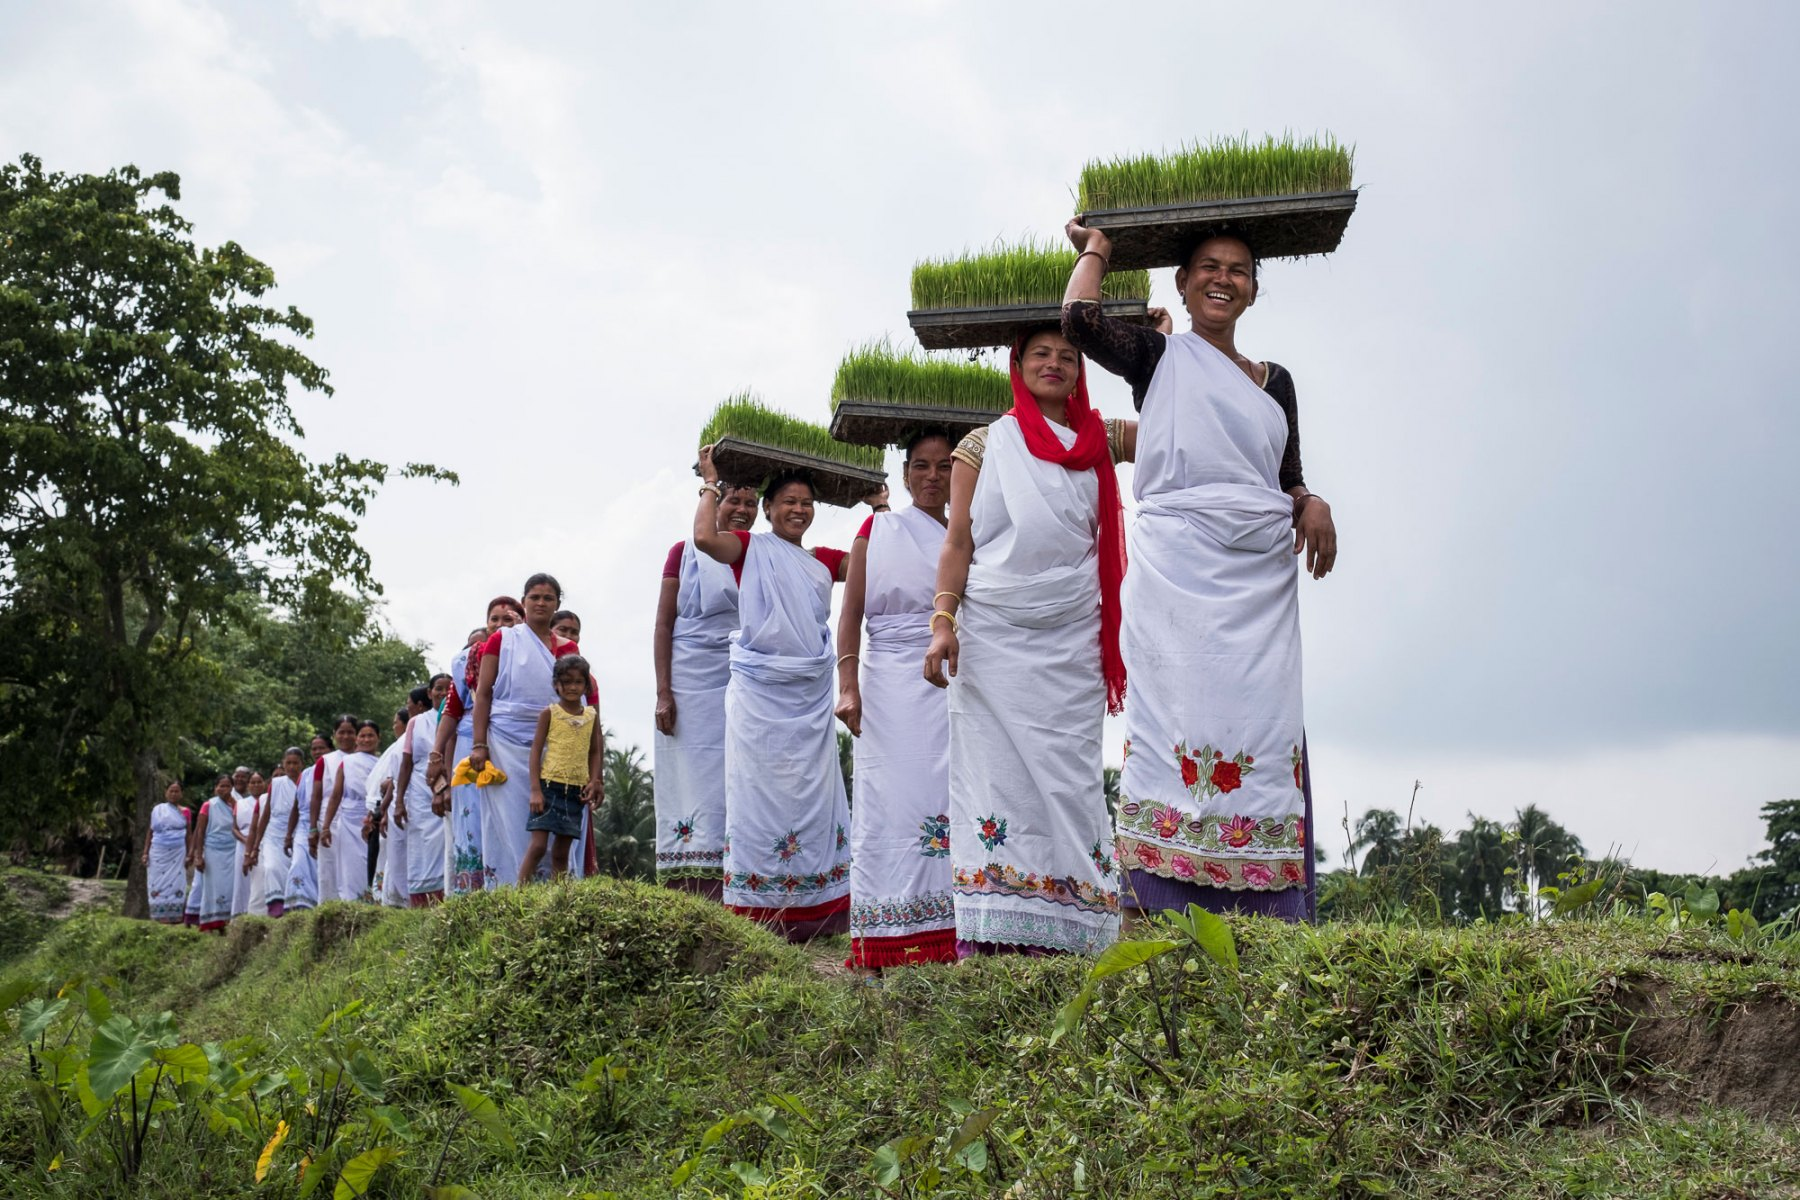 Members of the Ratu Rani Women's Agriculture Collective in Bhaluwa village walk out to a field where their group leader demonstrates how they have learnt to use a rice-transplanting machine. The group has 65 women farmers who are all from the Indigenous (Adavasi) Choudary group who traditionally are very poor and socially marginalized. The group is just one of many that are part of the ACIAR conservation agriculture project spanning the Eastern Gangetic Plains of Nepal, India and Bangladesh. The project aims to develop more intensive, sustainable timely planting of the main cereal crops – rice, maize and wheat – increasing yield and allowing for a third crop such as mung beans. Because of increasing rates of male migration from poor farming households, usually to work in the cities, women have emerged as the key producers, performing a wide range of tasks related to planning, cropping, managing, processing and marketing. This project is contributing to developing the potential of one of Asia's great future food bowls the Eastern Gangetic Plains.